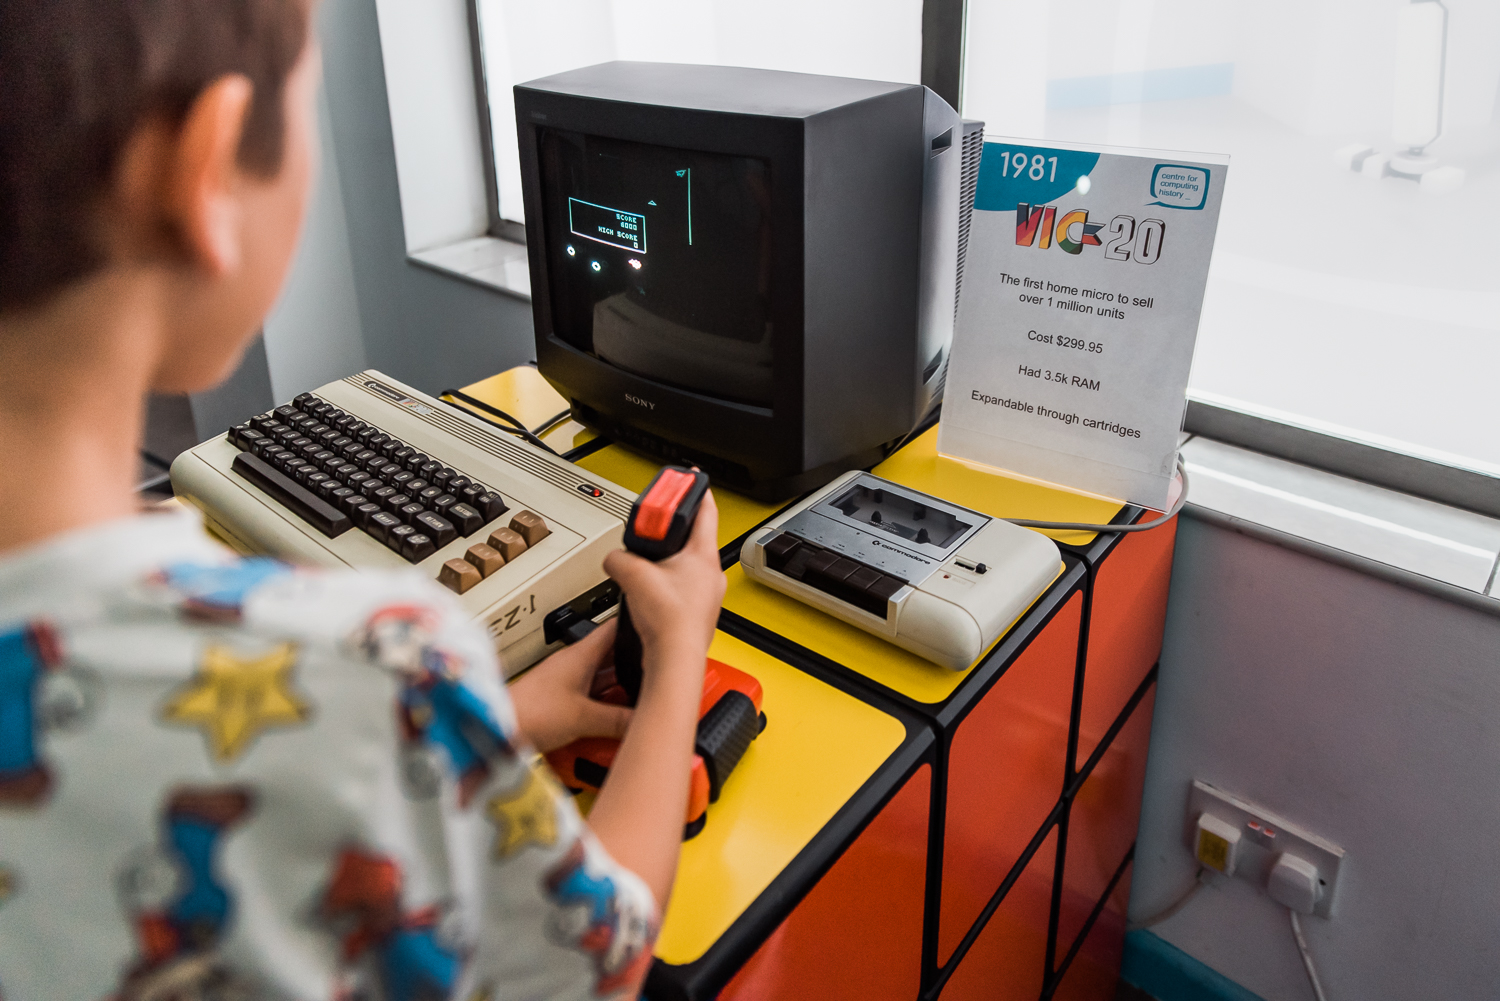 Playing computer game on the Vik-20 in the Museum of Computing History